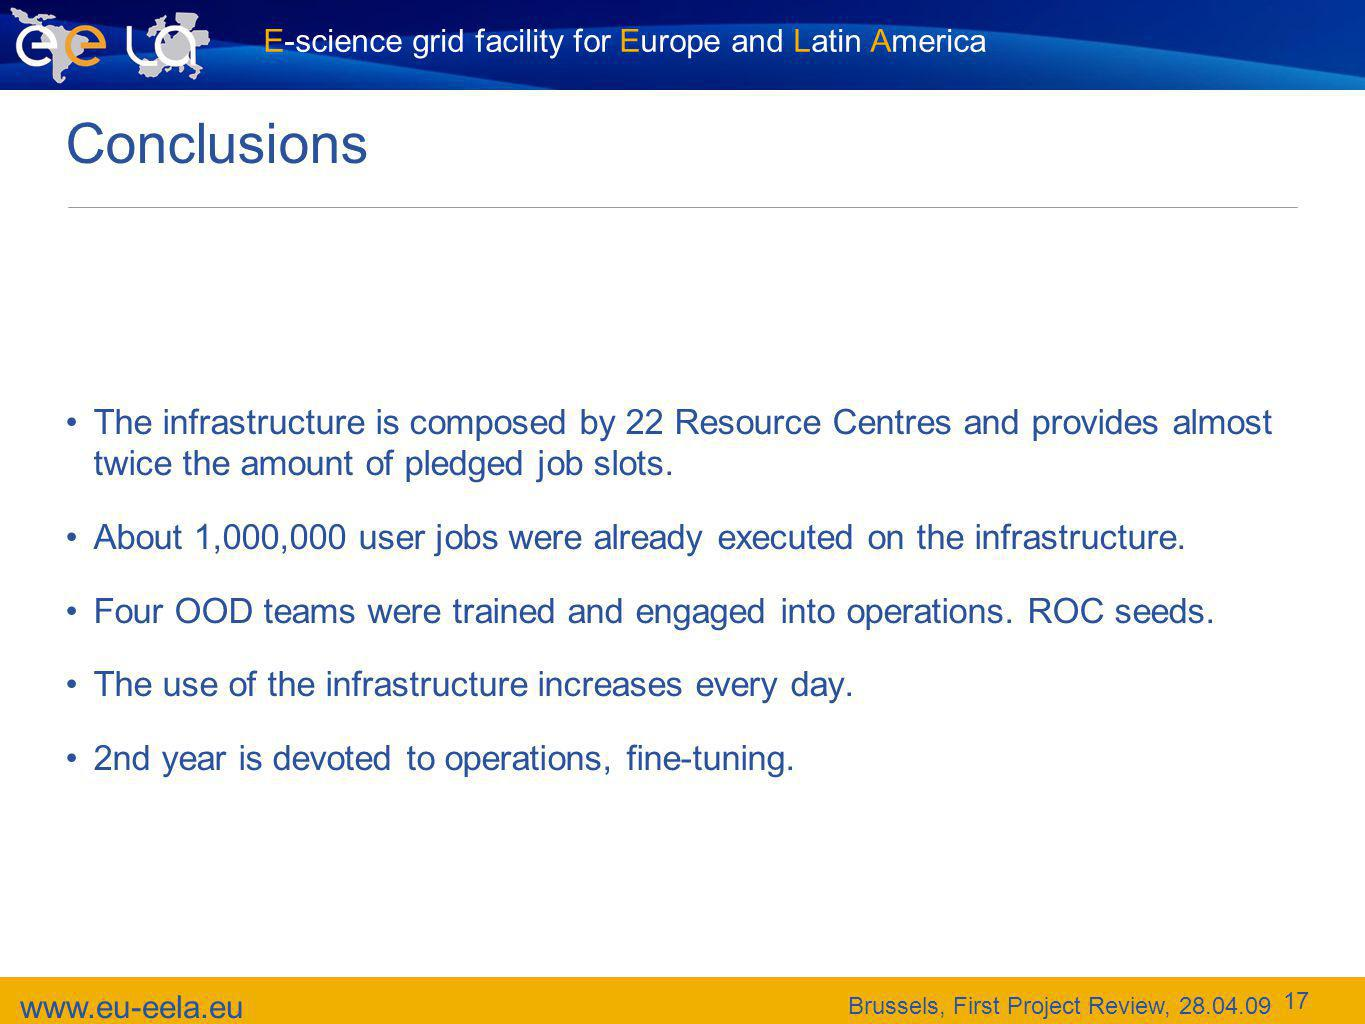 www.eu-eela.eu Brussels, First Project Review, 28.04.09 E-science grid facility for Europe and Latin America 17 Conclusions The infrastructure is composed by 22 Resource Centres and provides almost twice the amount of pledged job slots.